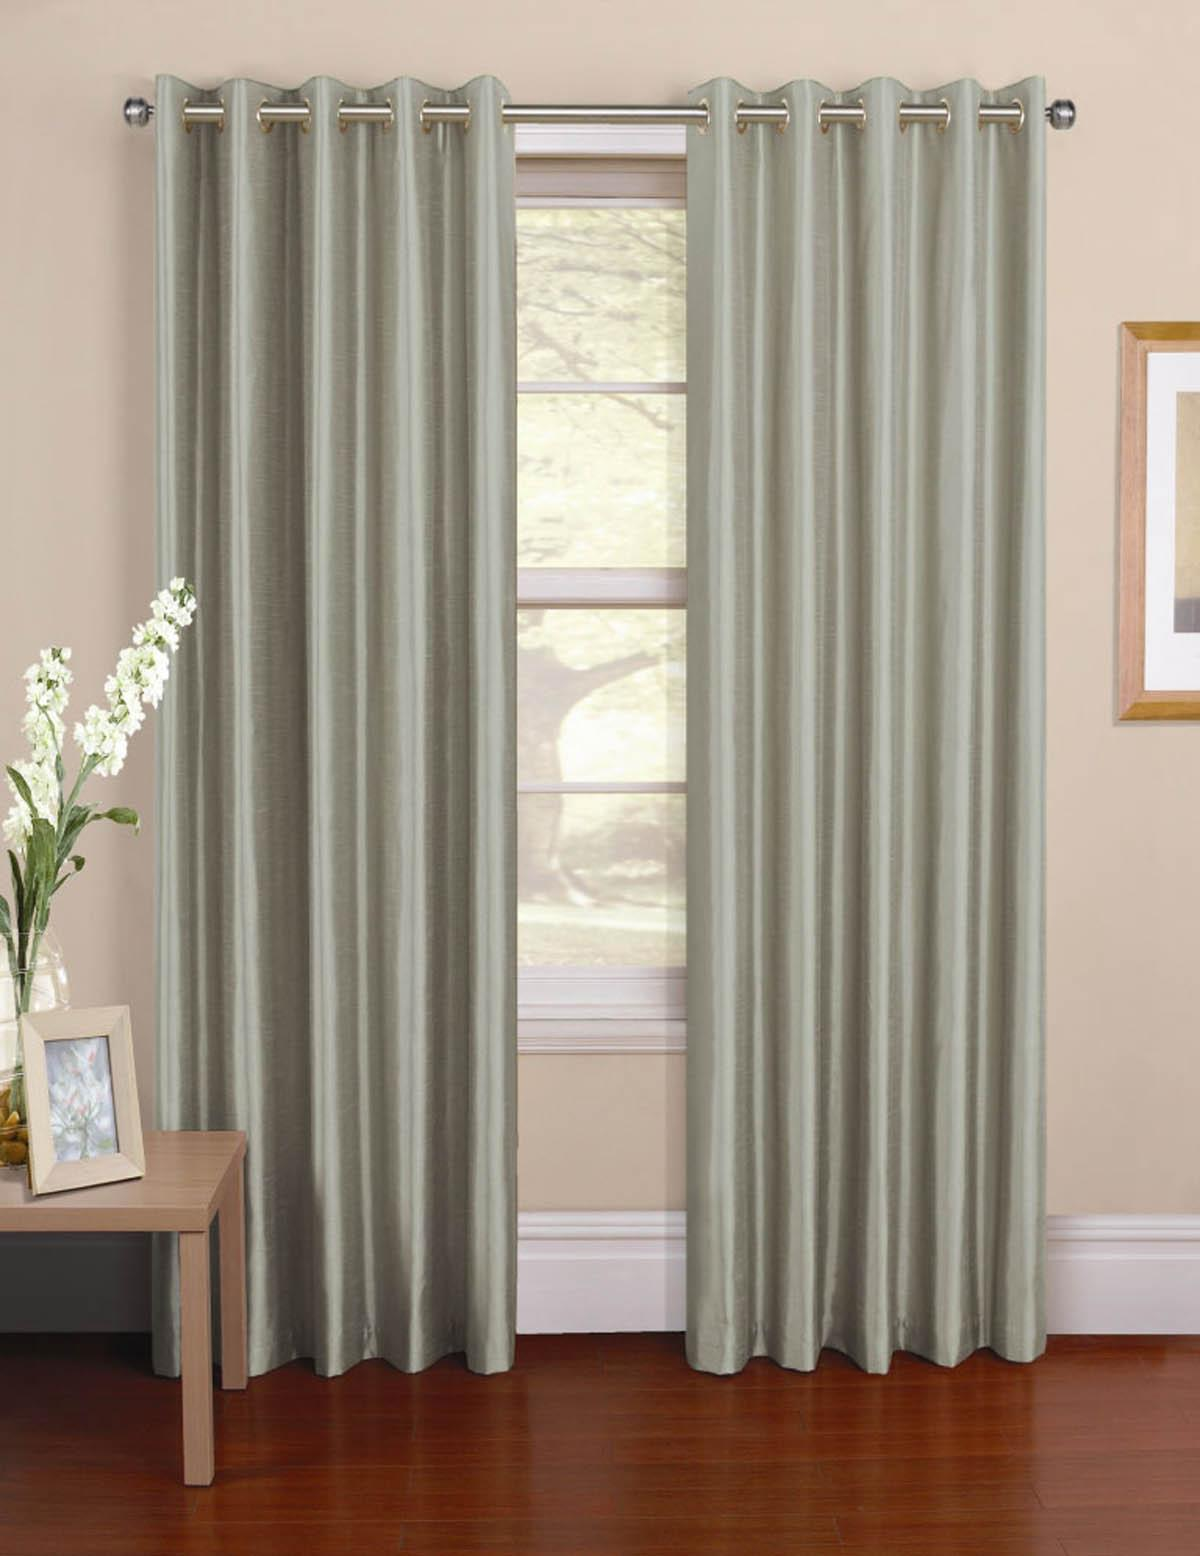 Cheap grey curtains - Venezia Ready Made Eyelet Curtains